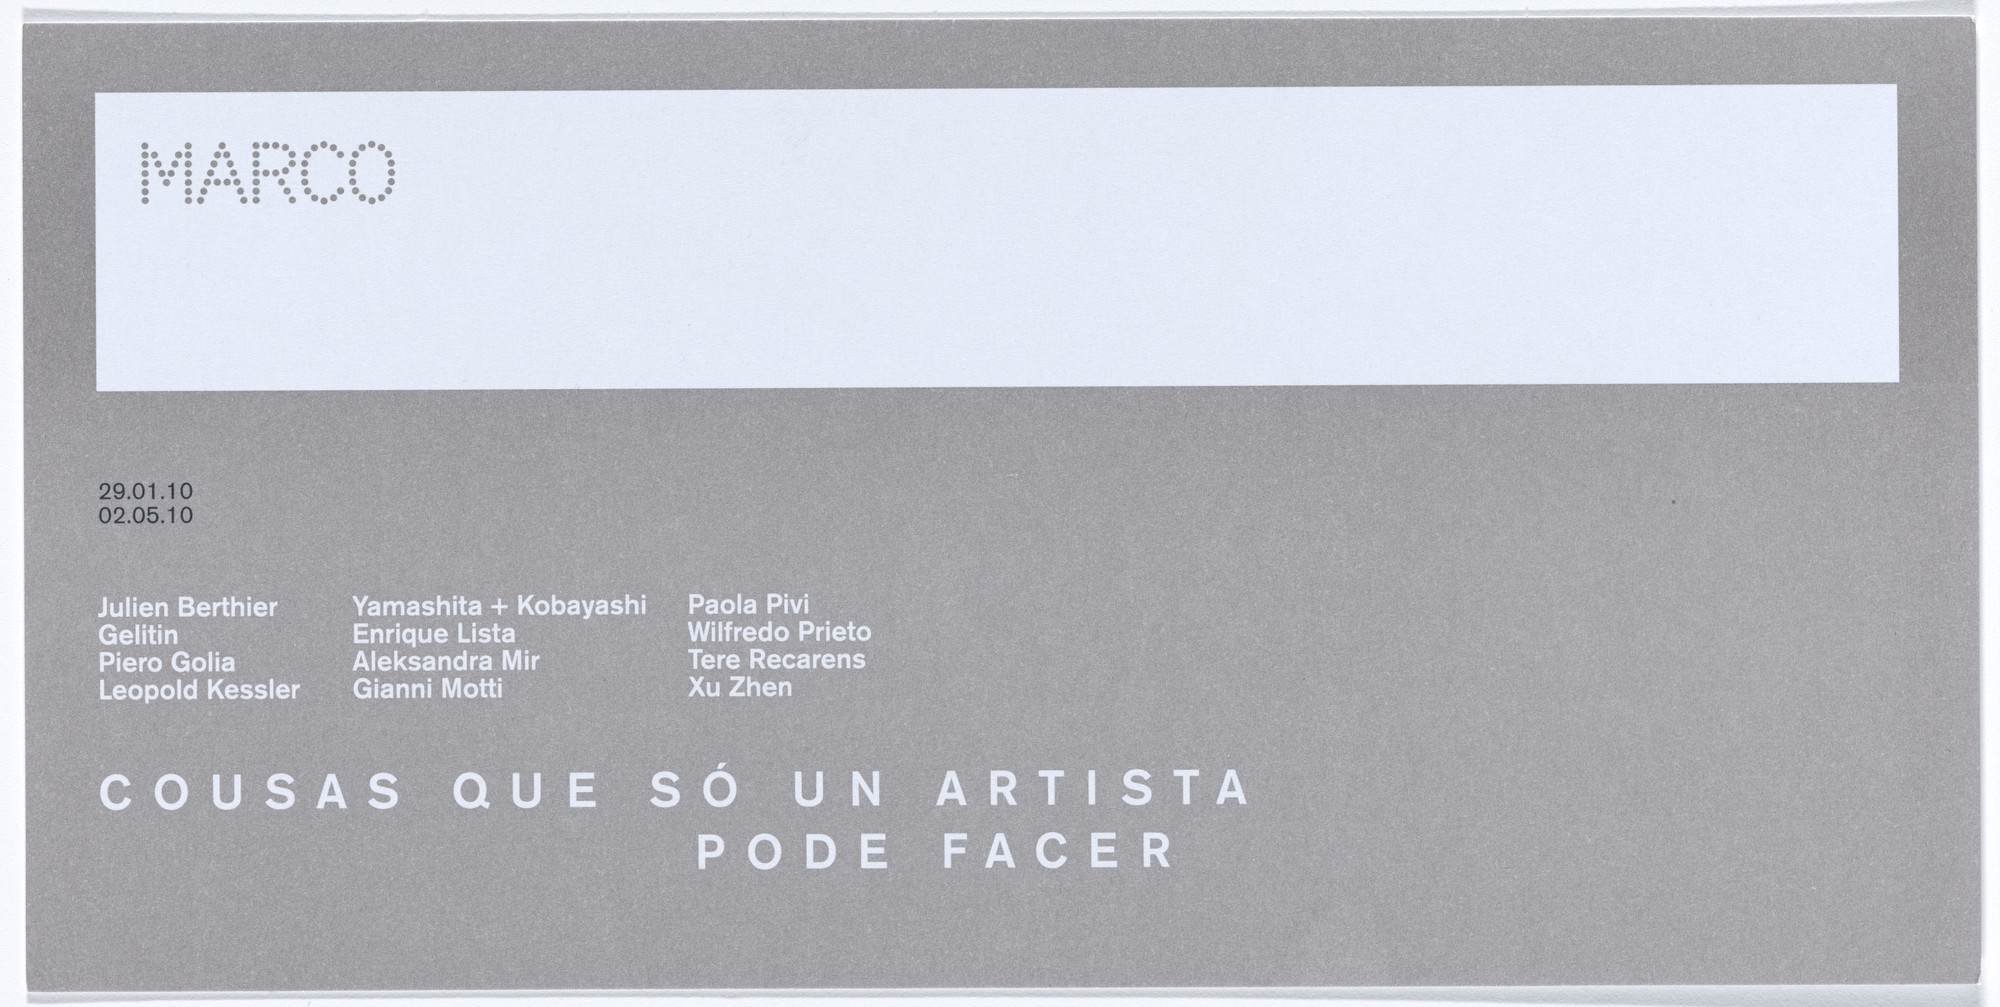 Aleksandra Mir. Invitation for opening of Things That Only an Artist Can Do, MARCO Museo de Arte Contemporánea de Vigo, Spain, January 29–May 2, 2010. 2010